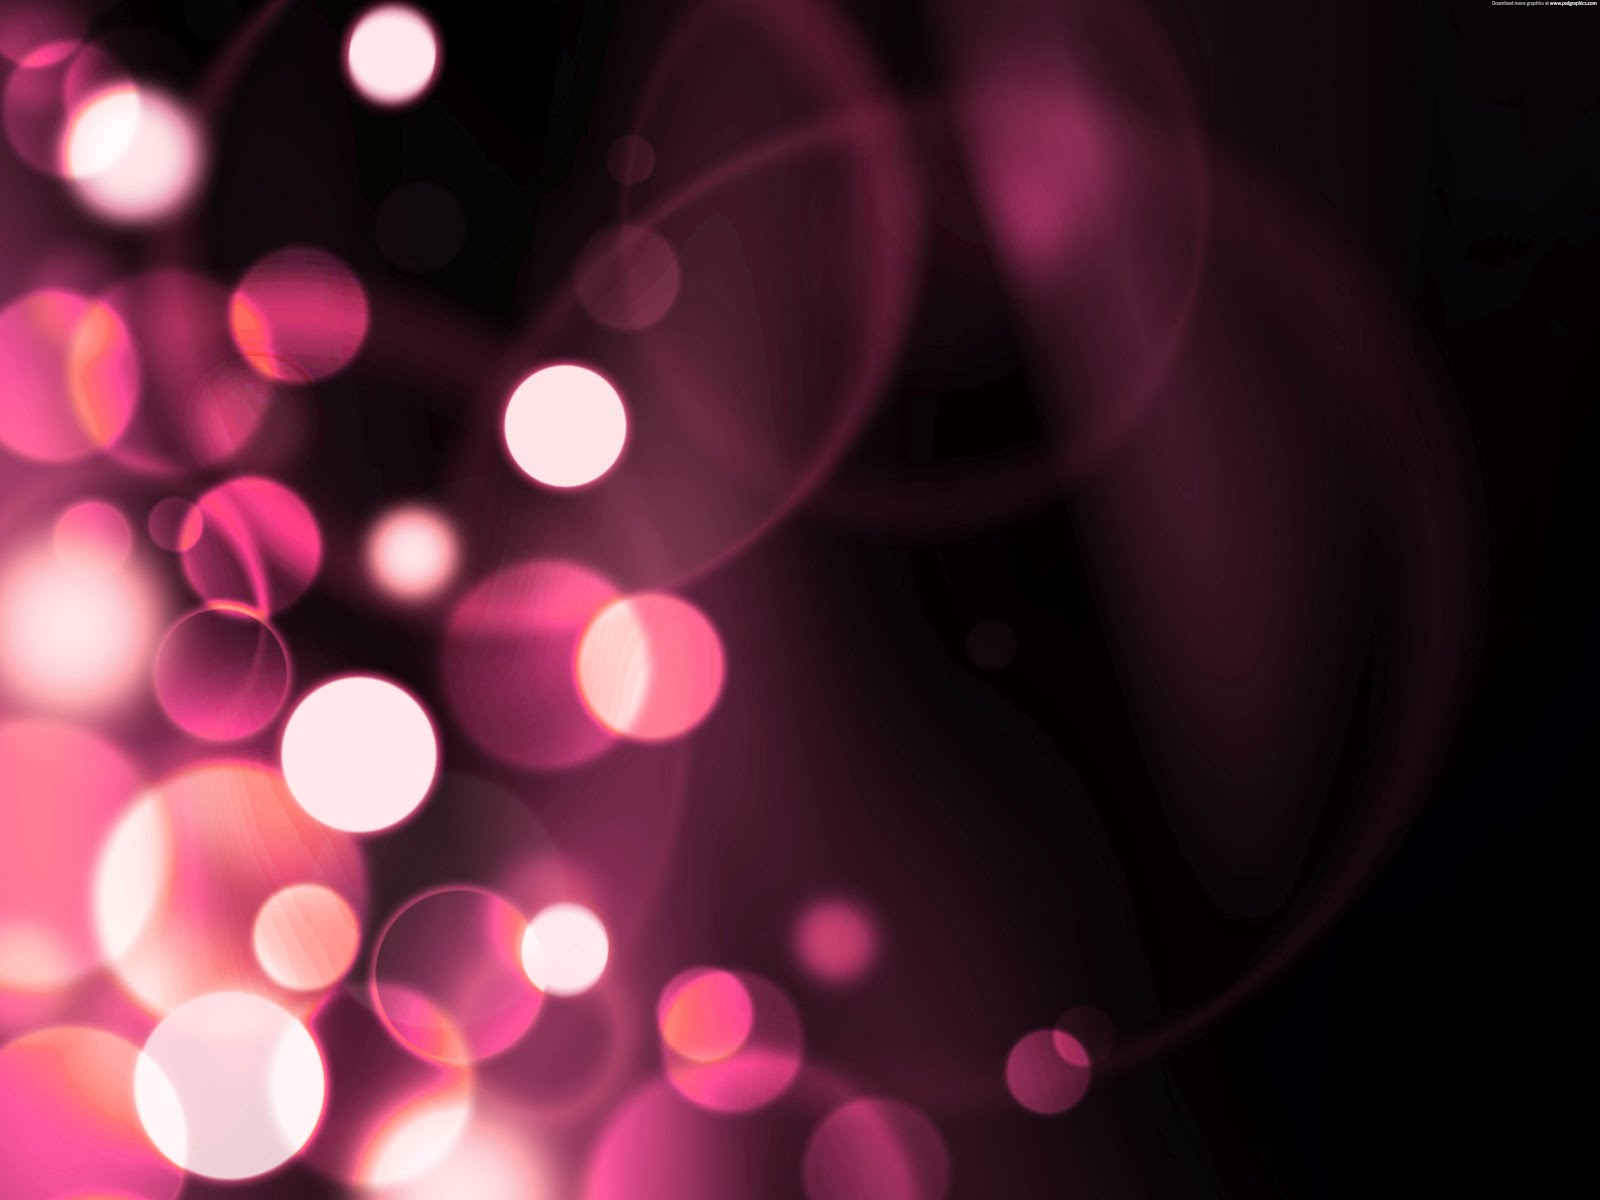 10 Free Blurry Blurred Light Backgrounds Download